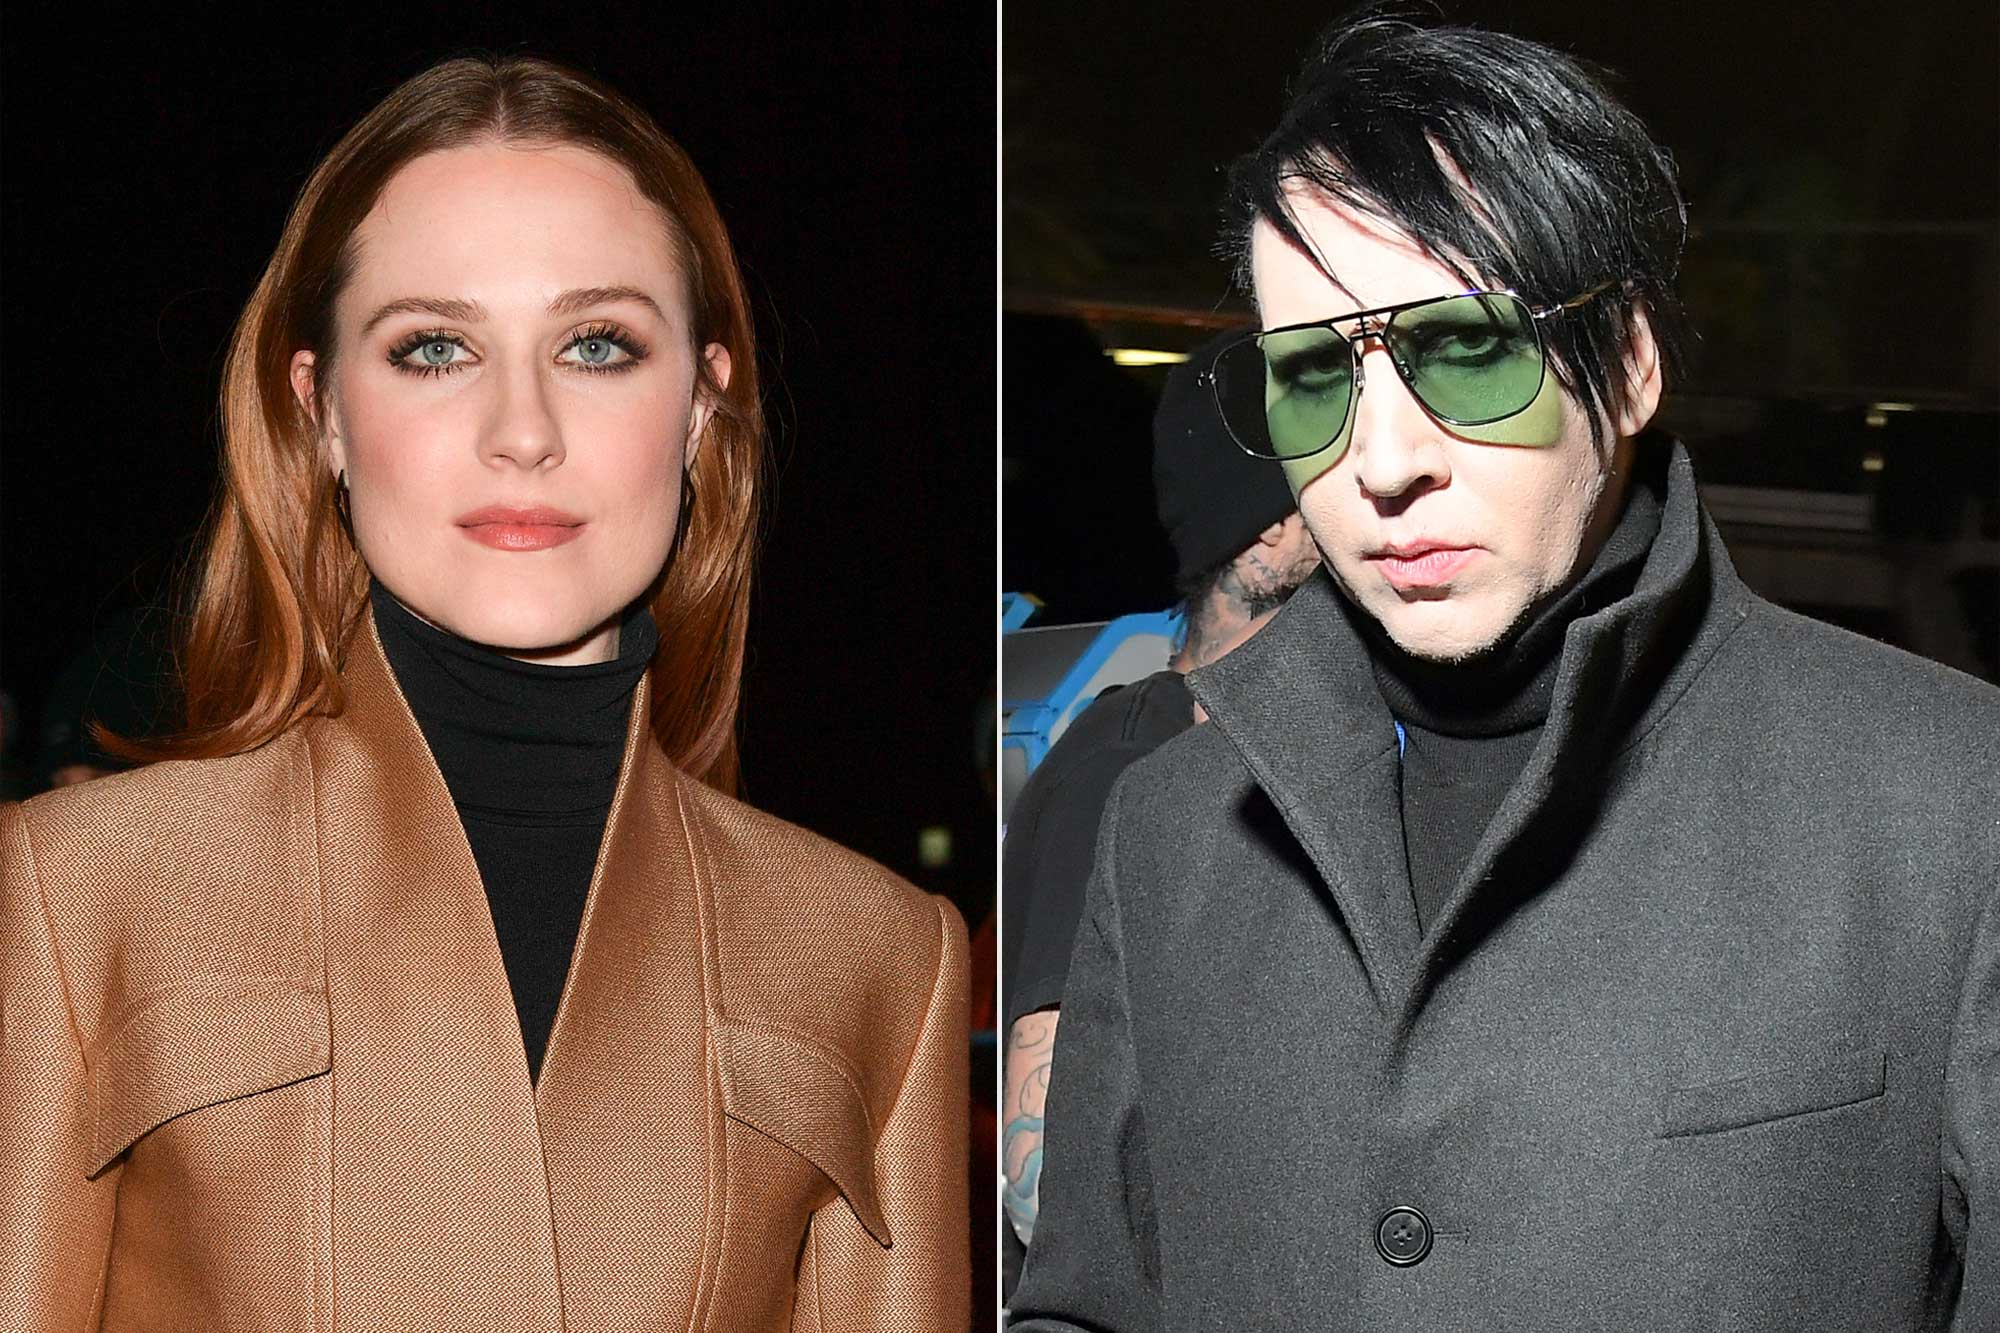 Evan Rachel Wood says ex Marilyn Manson 'horrifically' abused her for years  | EW.com